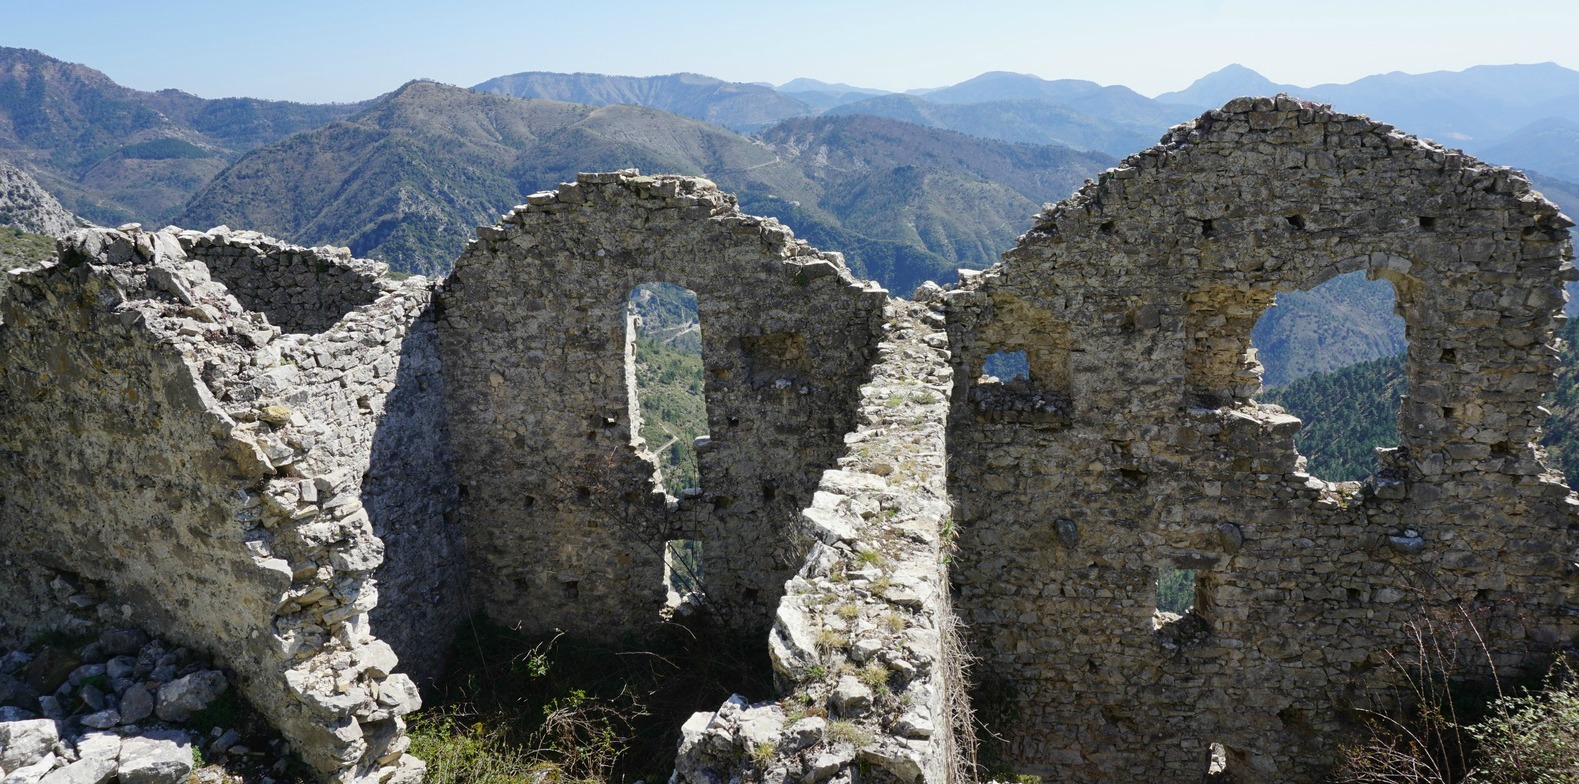 Ruins of Rocca Sparviera